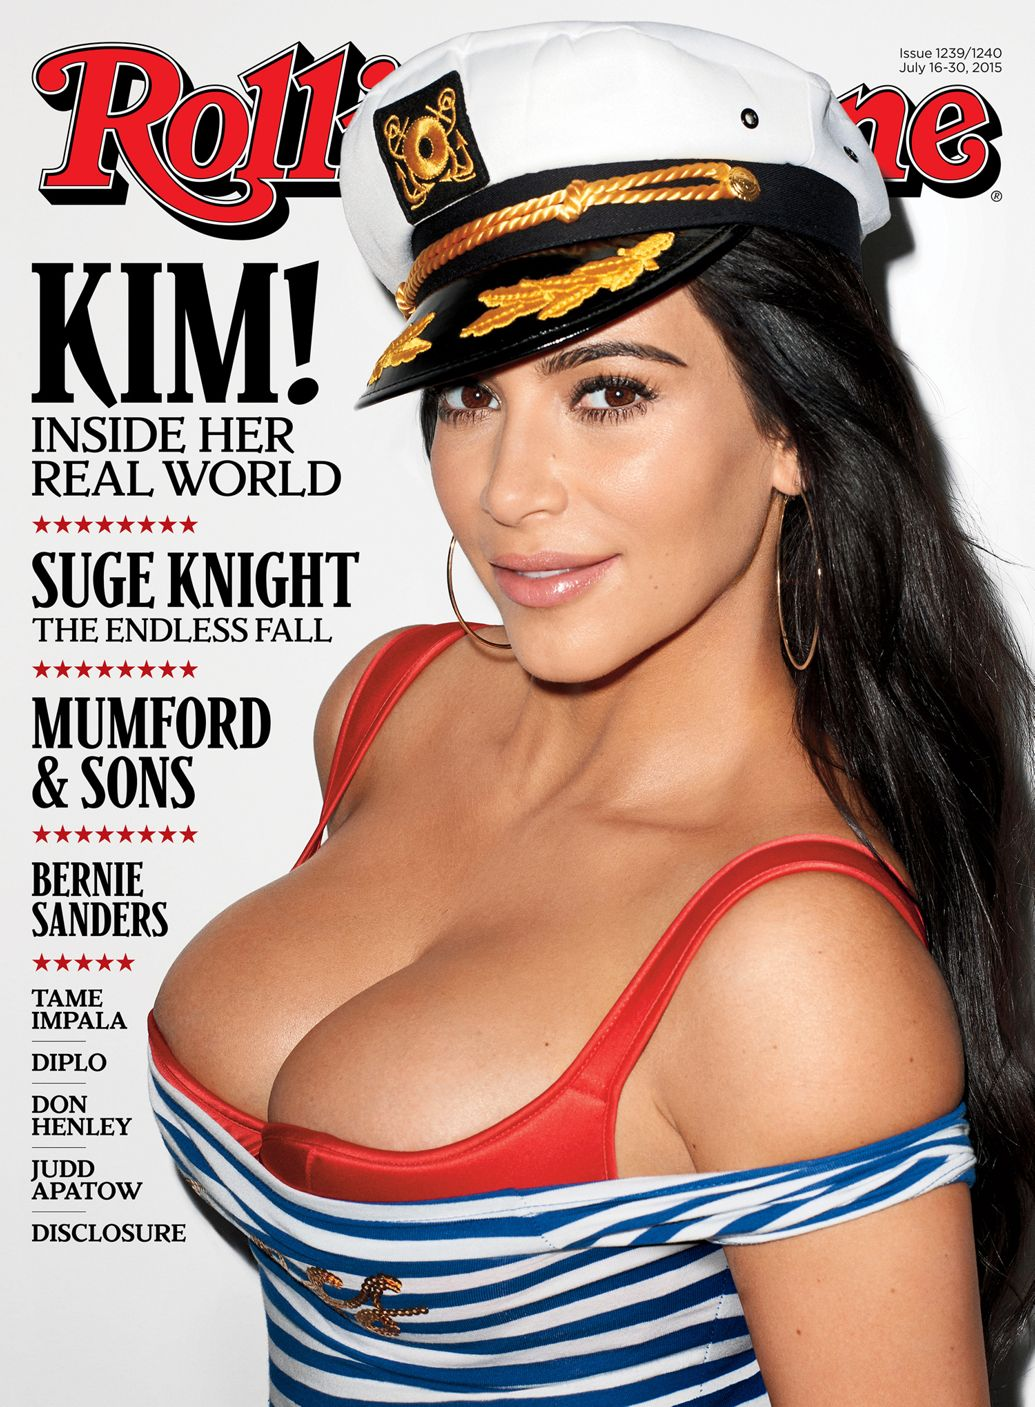 Terry Richardson photographed Kim Kardashian for the cover of Rolling Stone.